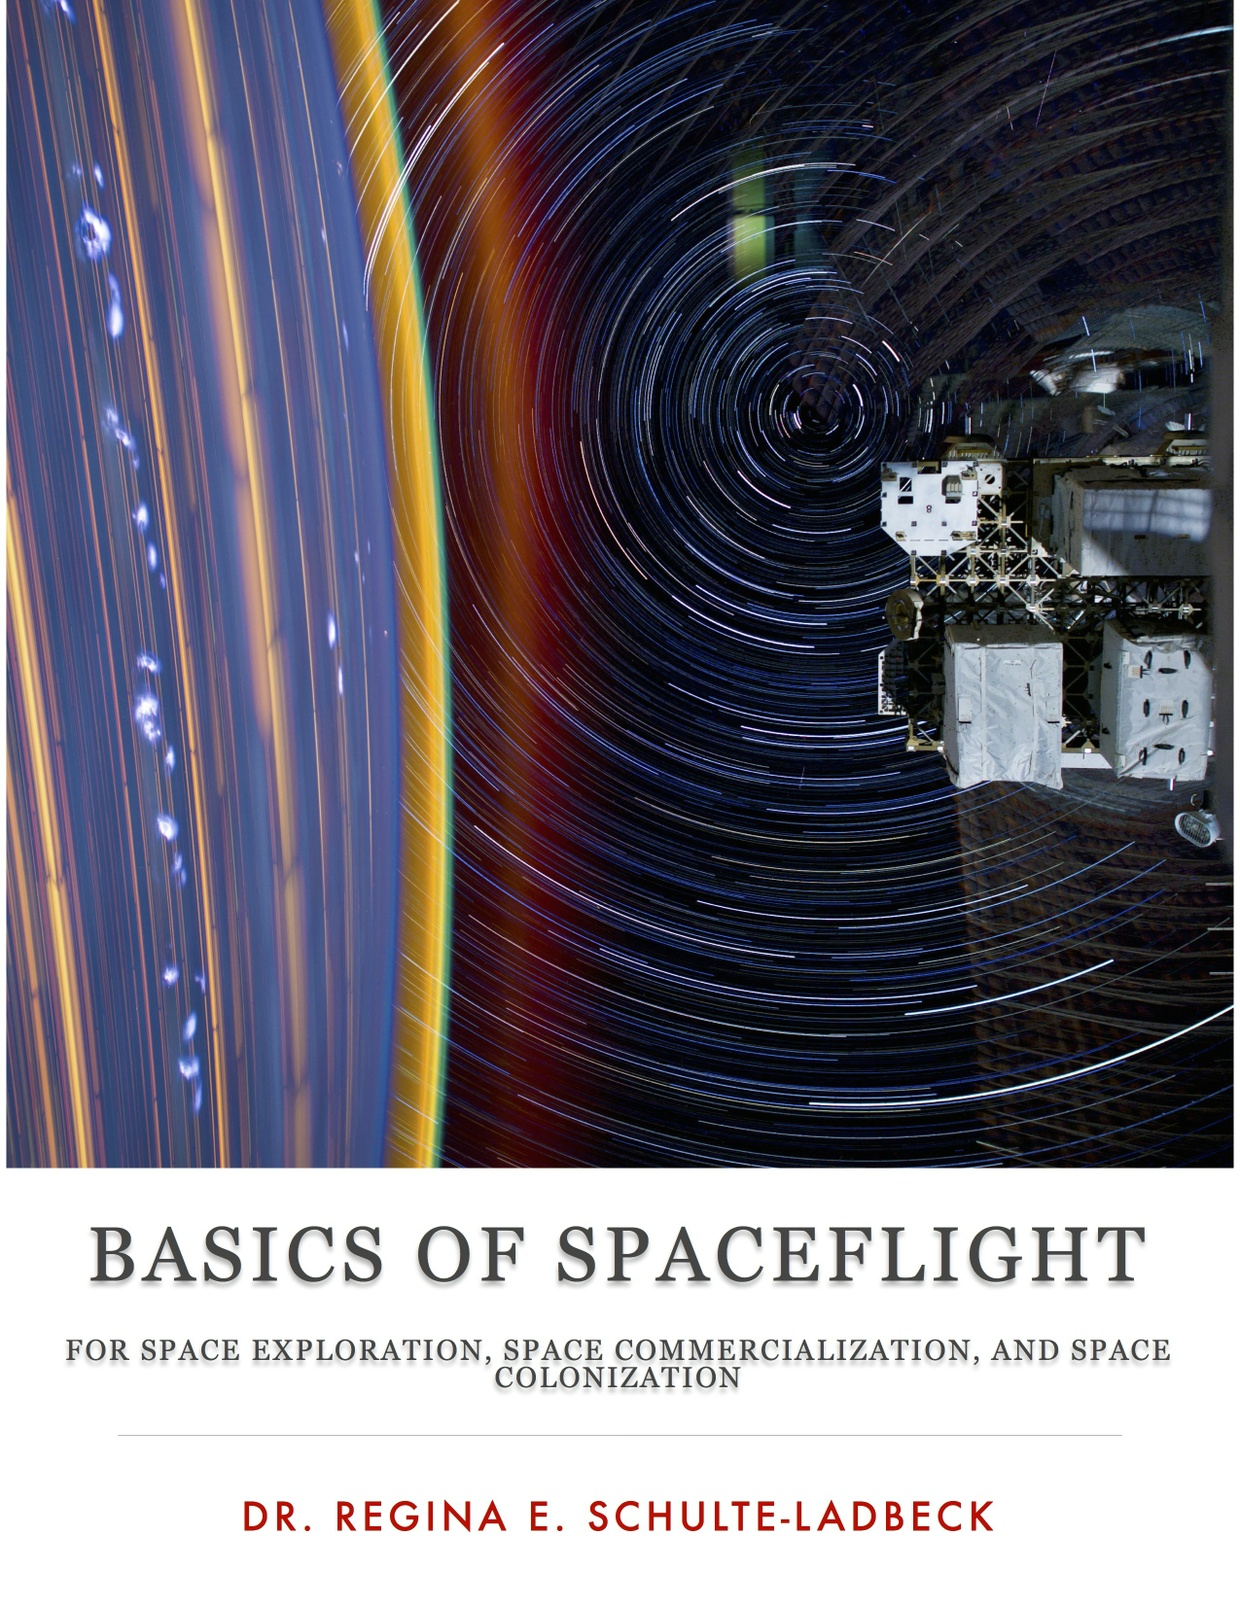 Basics of Spaceflight for Space Exploration, Space Commercialization, and Space Colonization